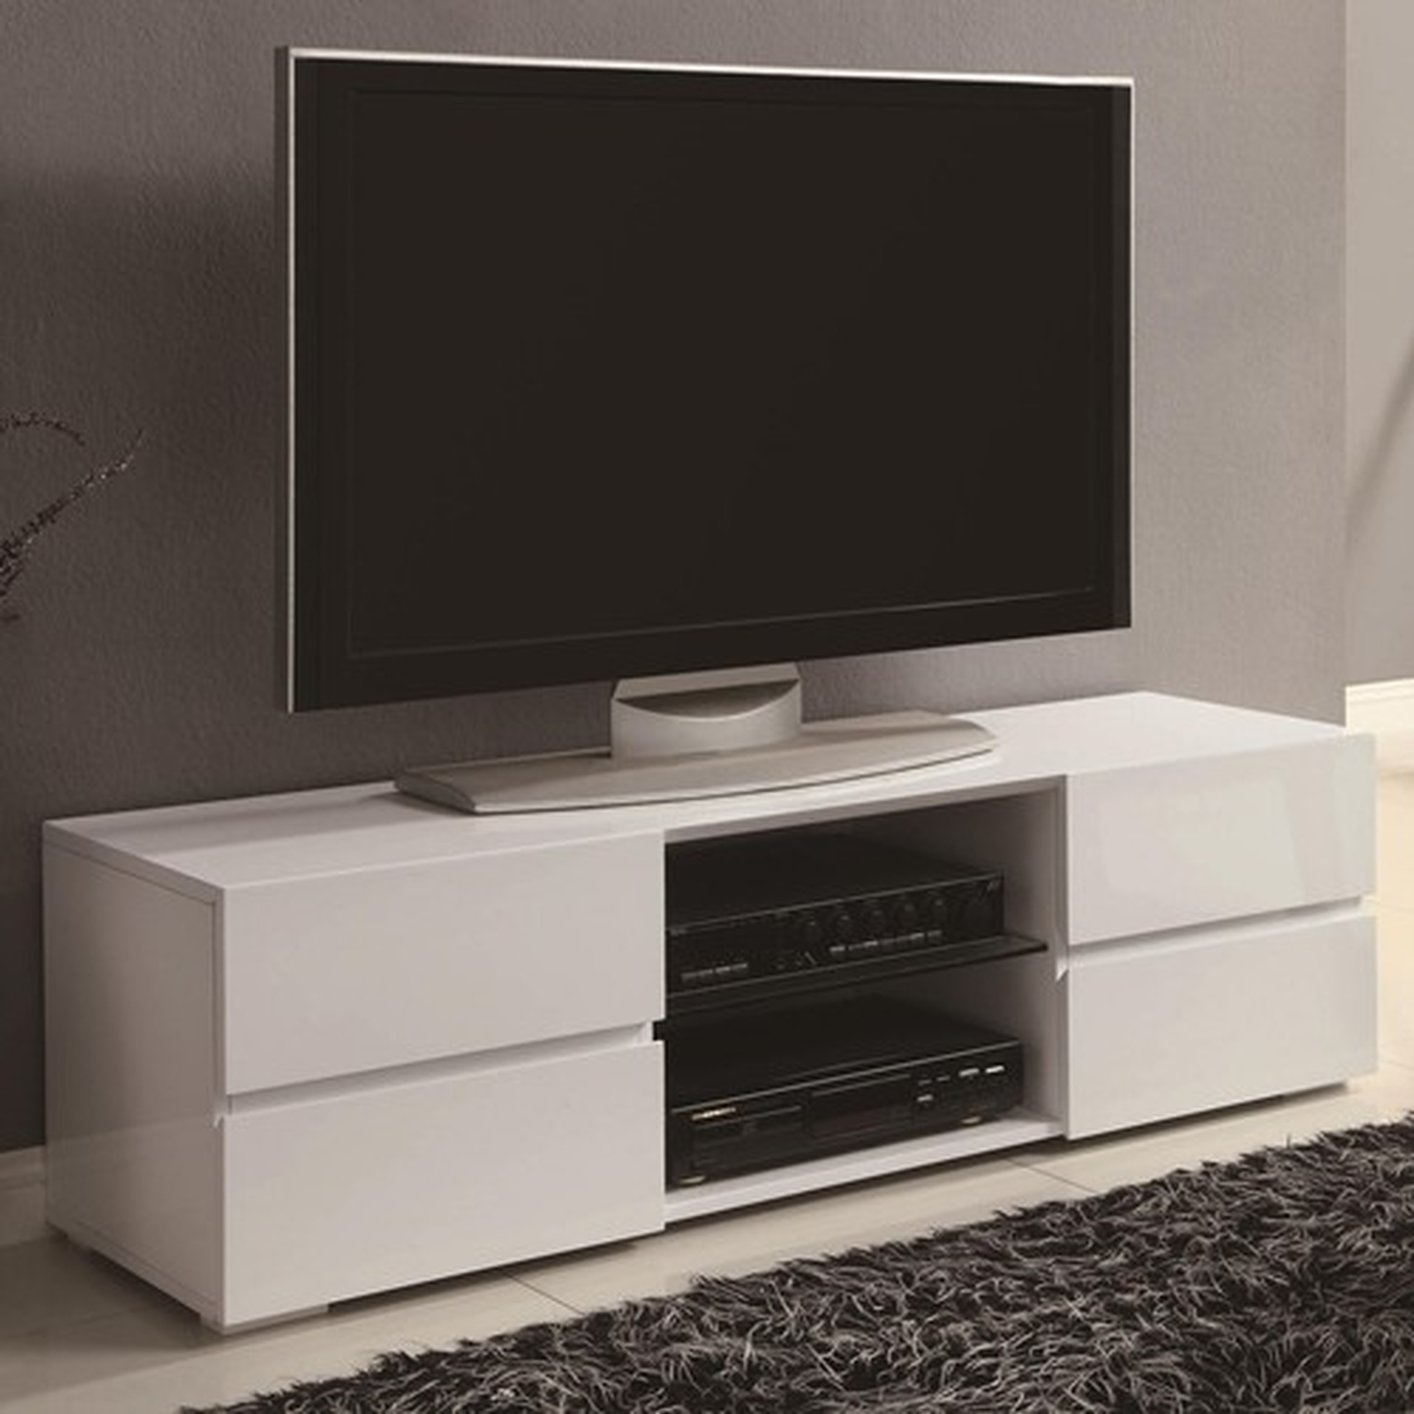 white wood tv stand White Wood TV Stand   Steal A Sofa Furniture Outlet Los Angeles CA white wood tv stand